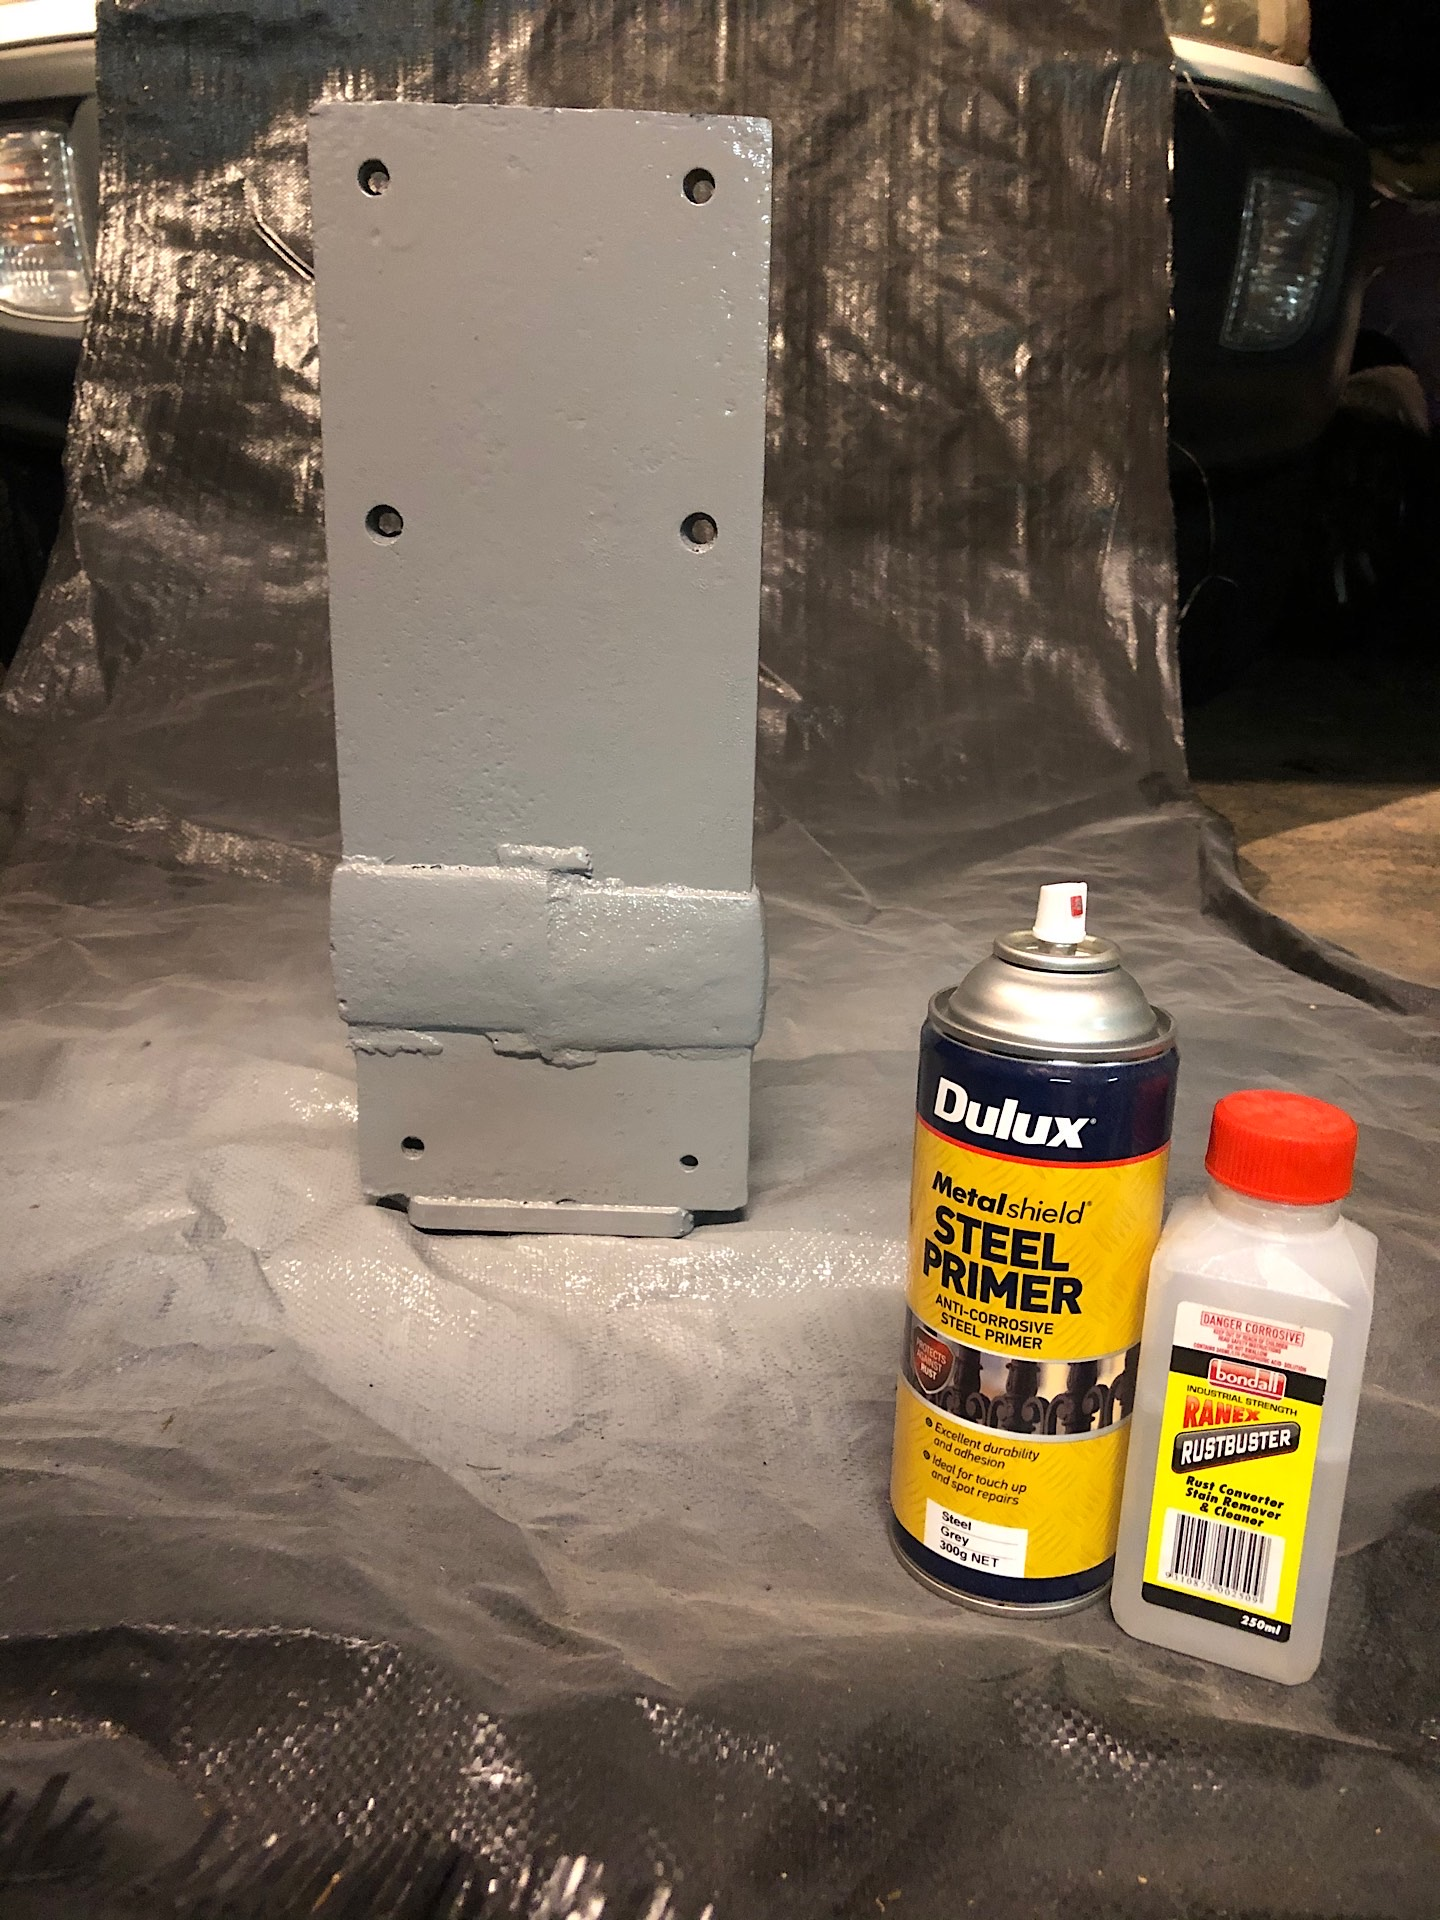 Converting rust and primed the rail track